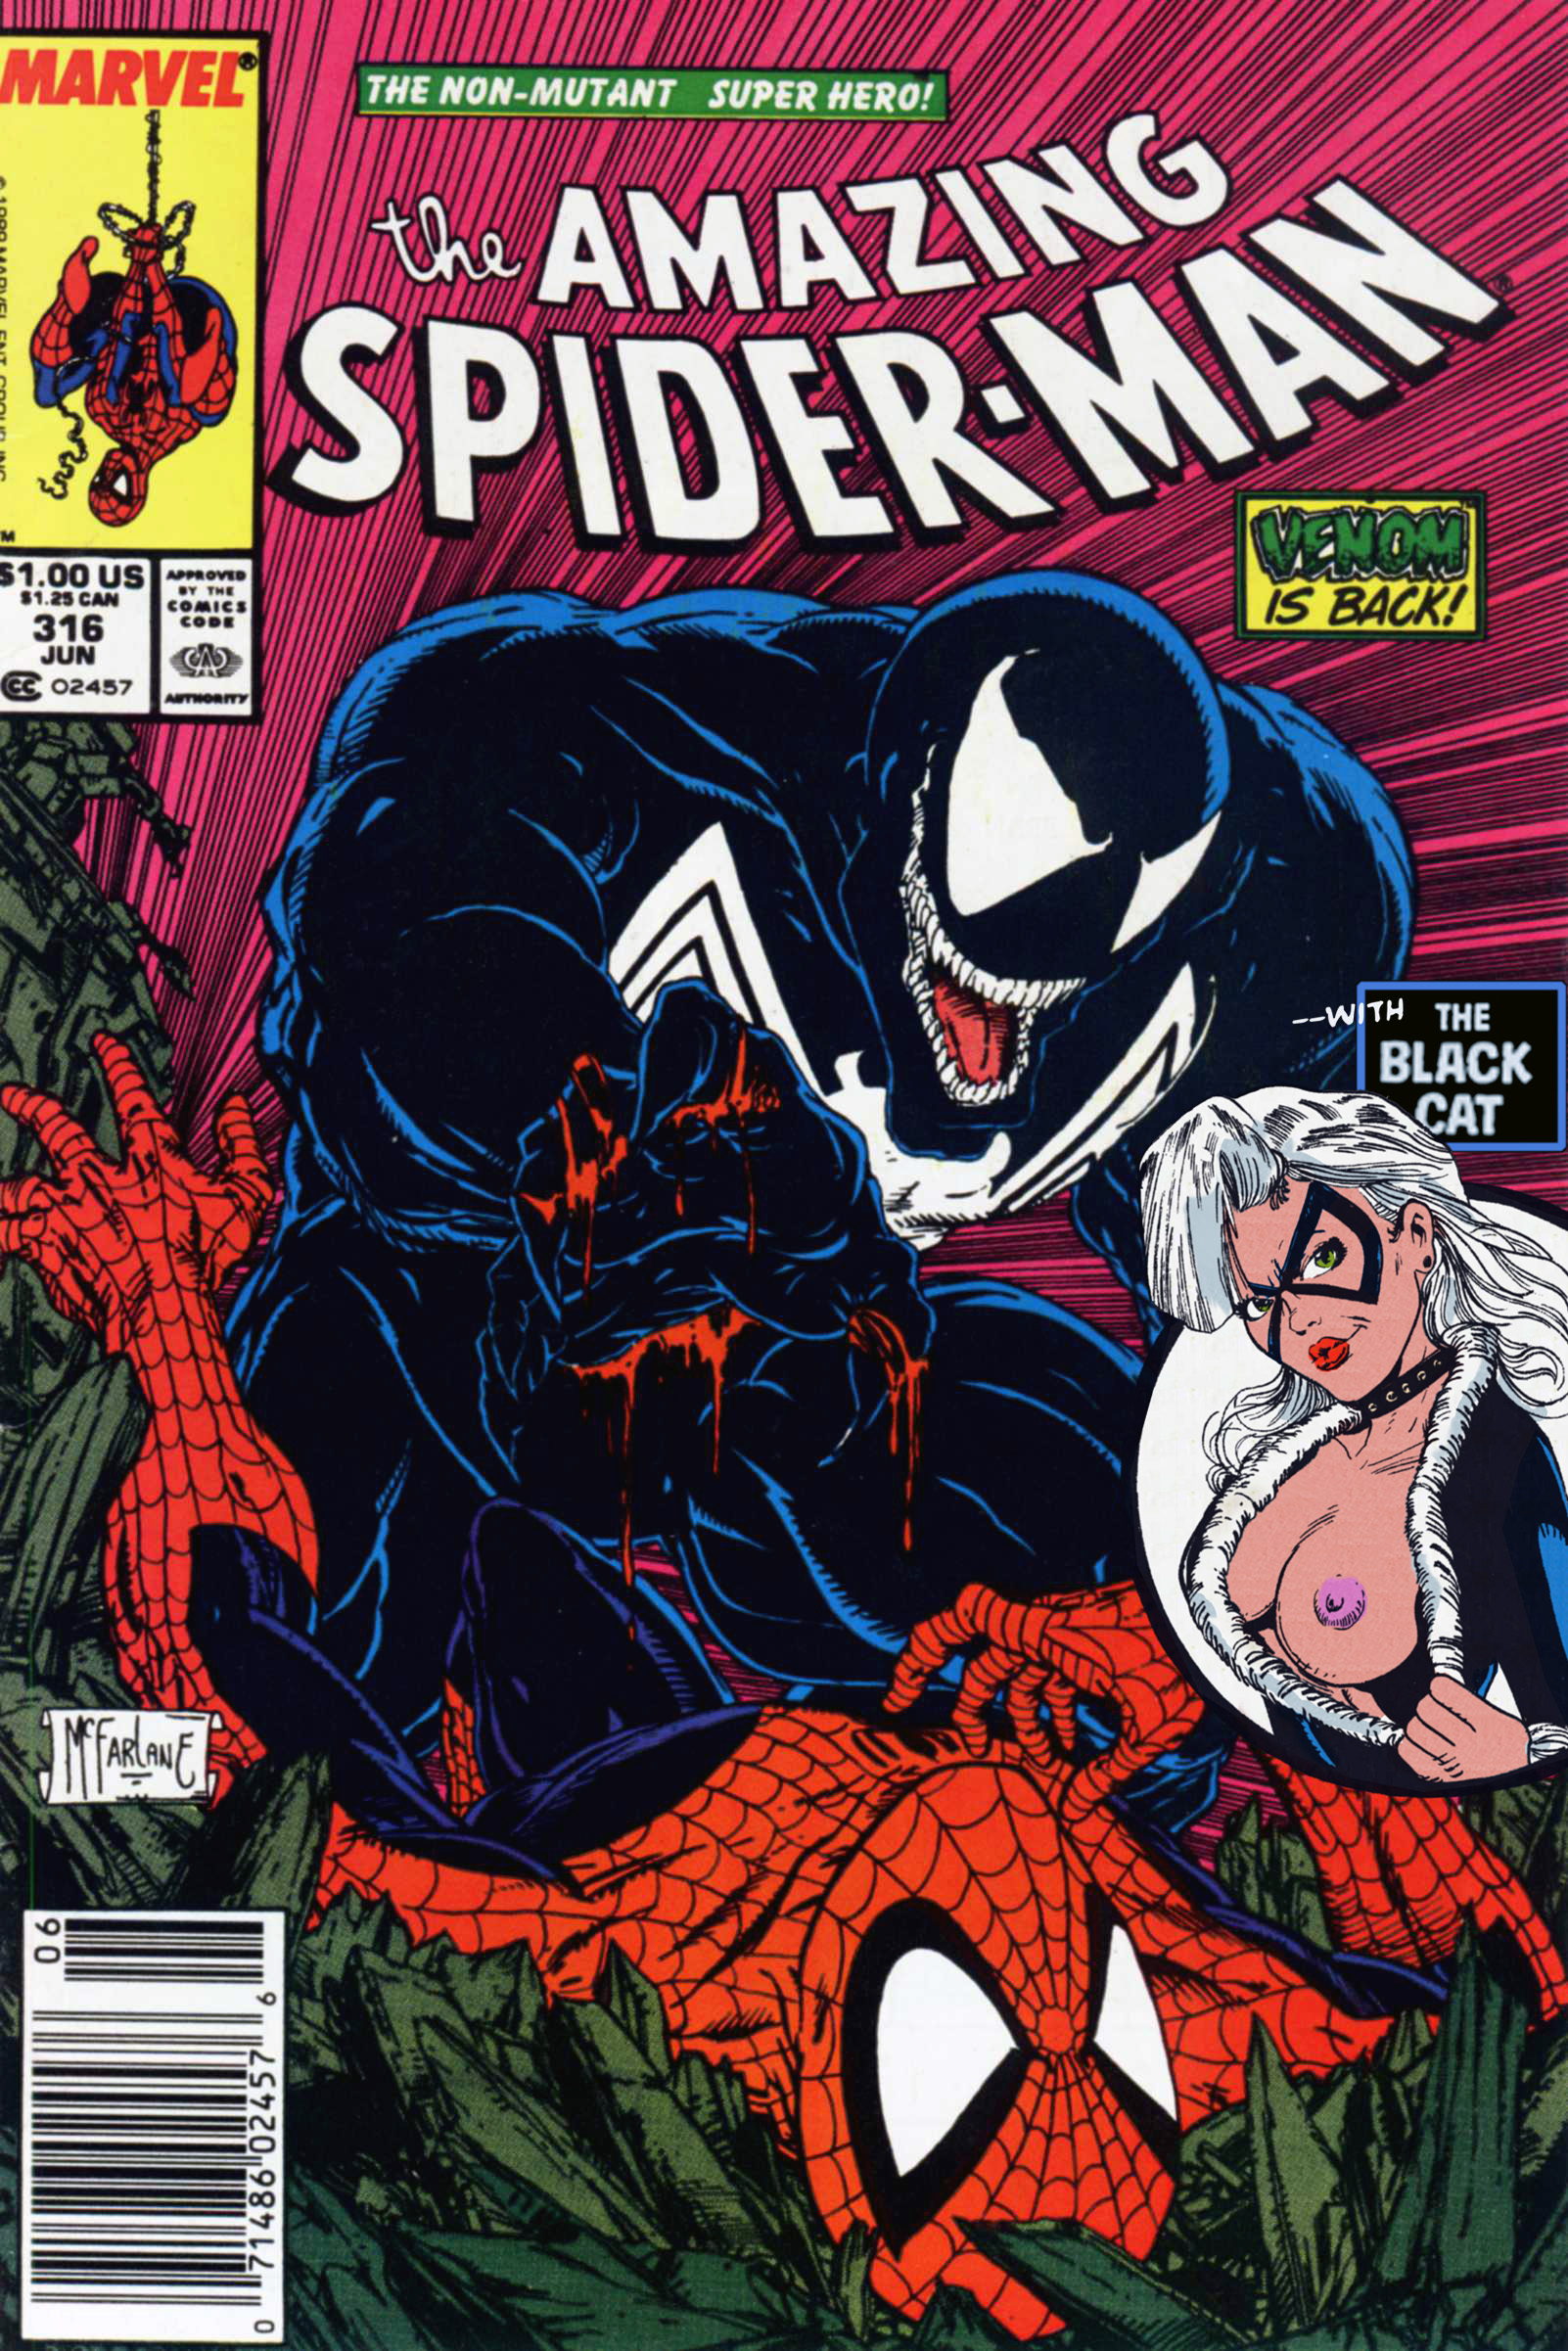 SureFap xxx porno Spider-Man - Amazing Spider-Man - Venom is Back #316 (1989) - (Un-Censor Works)